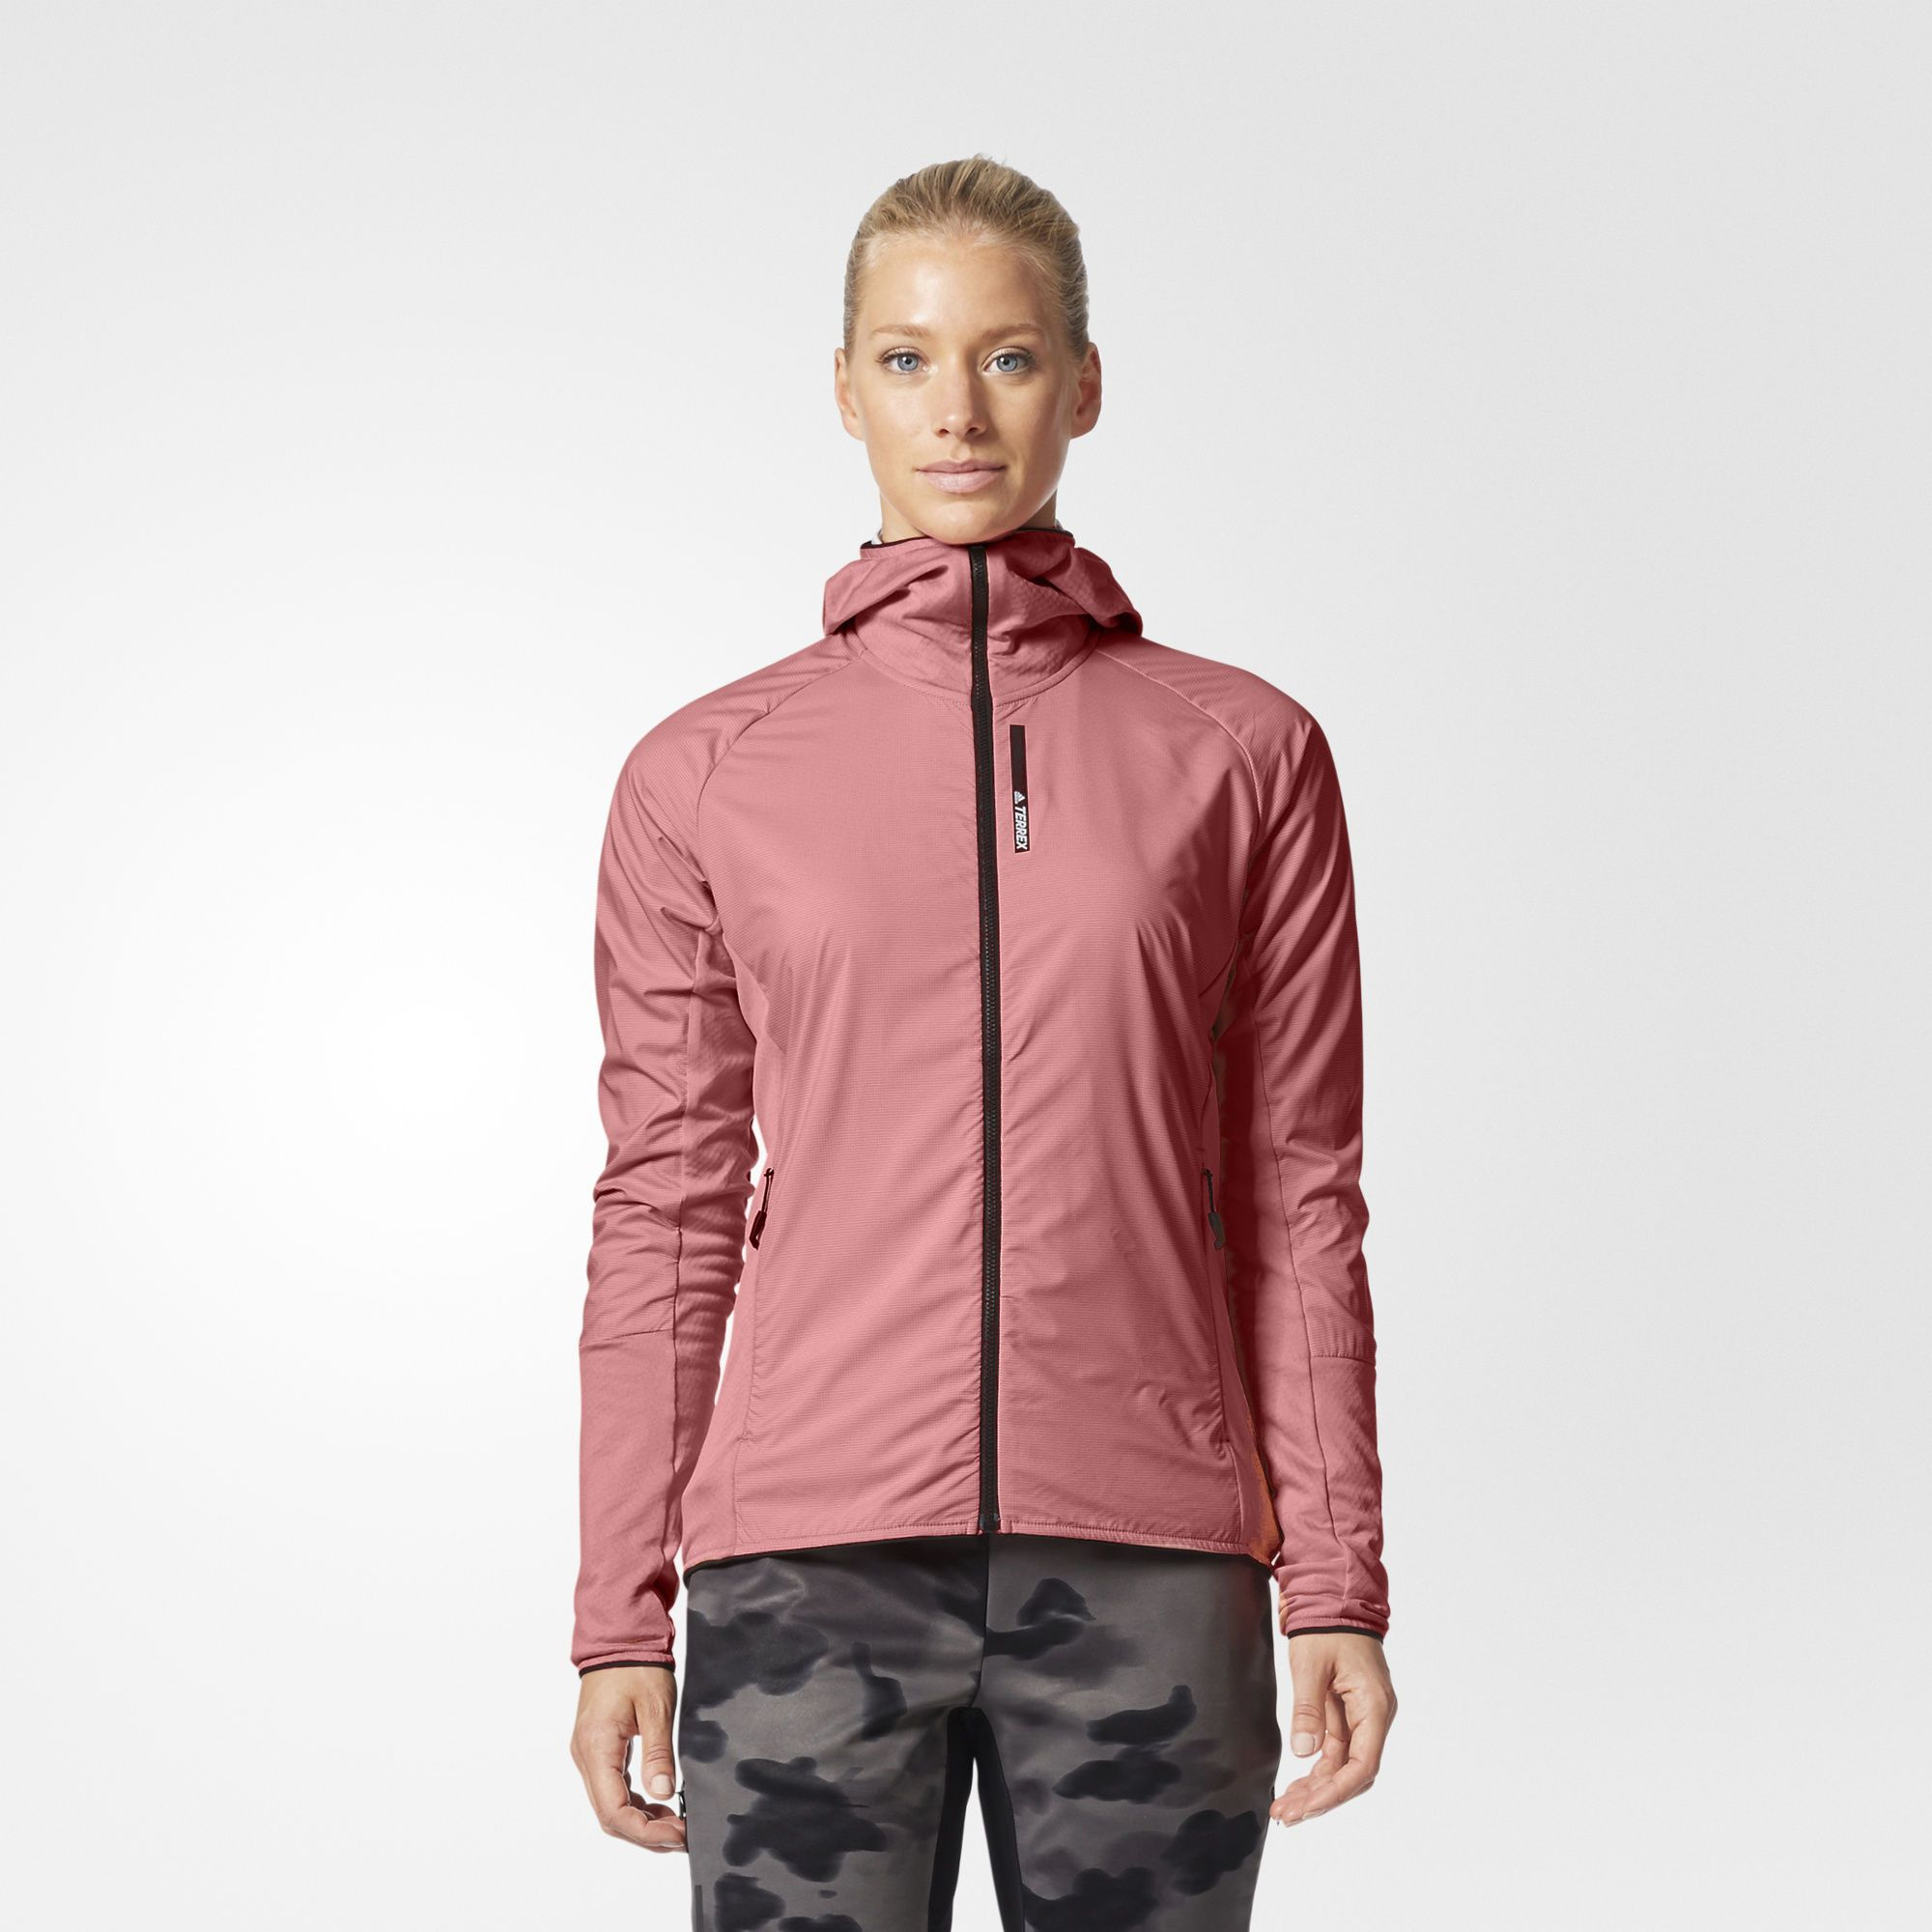 This Fleece A Design For Fast Jacket Women's Features Paced Hybrid qv7xwrqfa